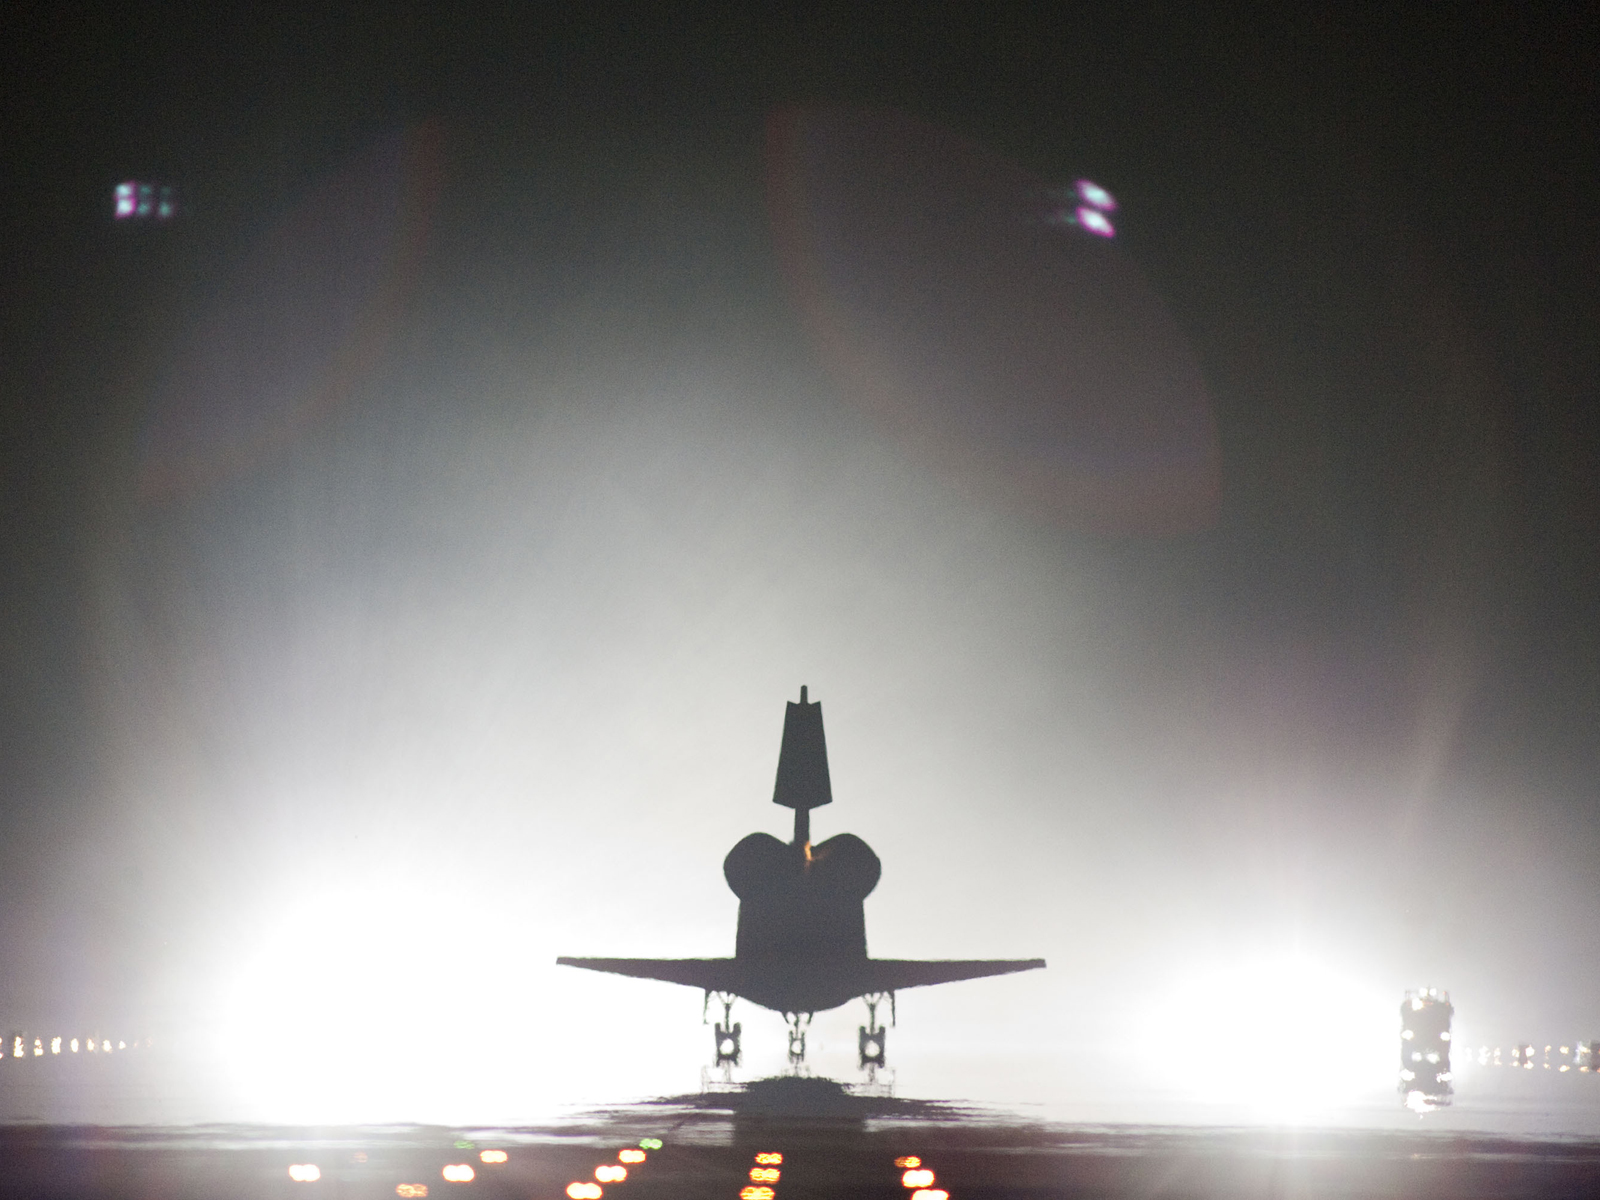 Xenon lights help lead space shuttle Endeavour home to NASA's Kennedy Space Center in Florida.